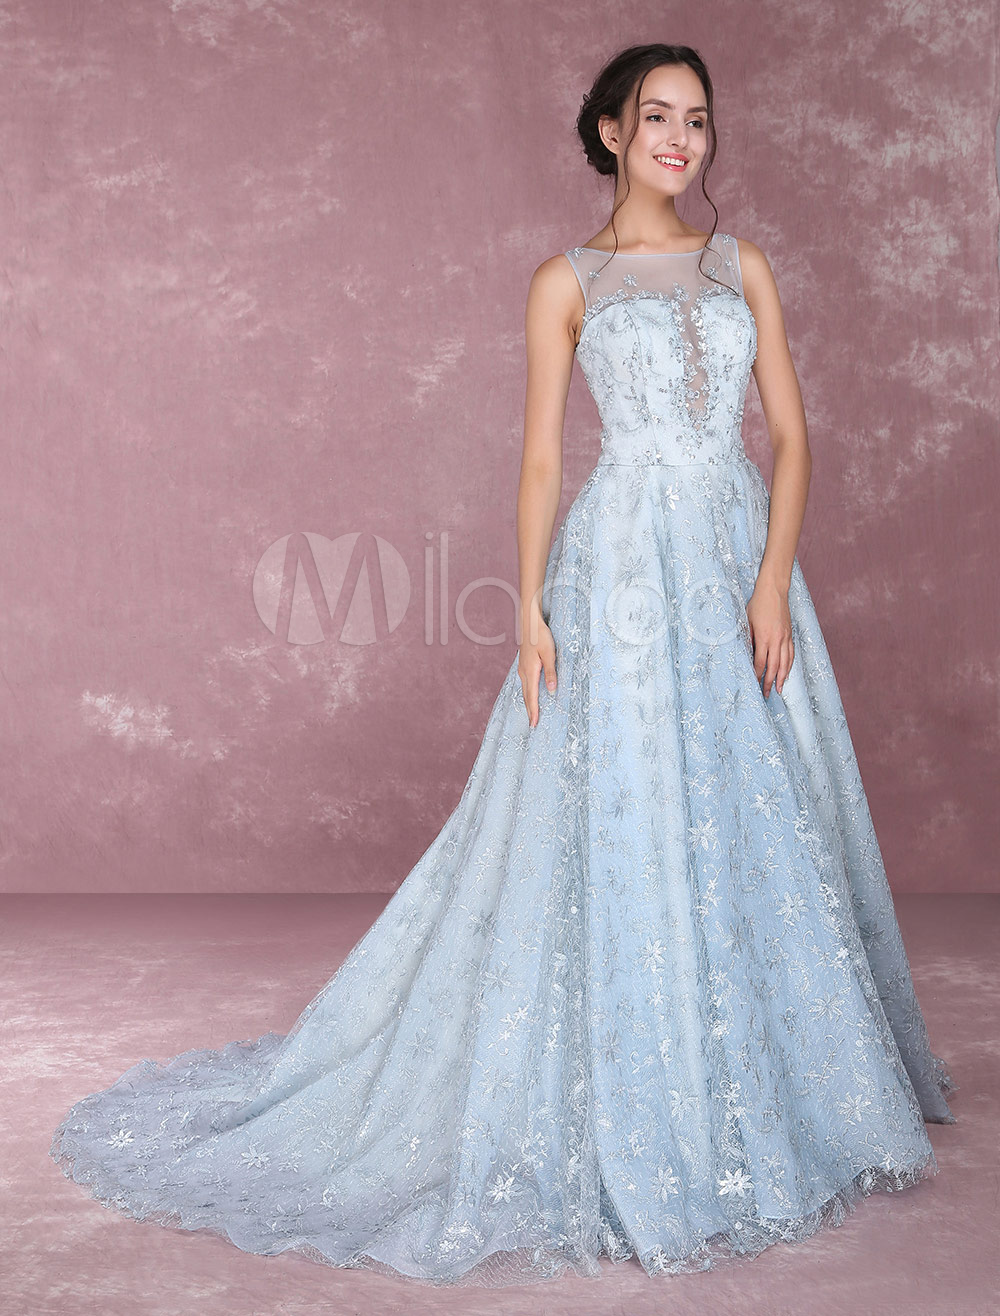 Lace Prom Dresses Illusion Sequined Embroidered Homecoming Dresses